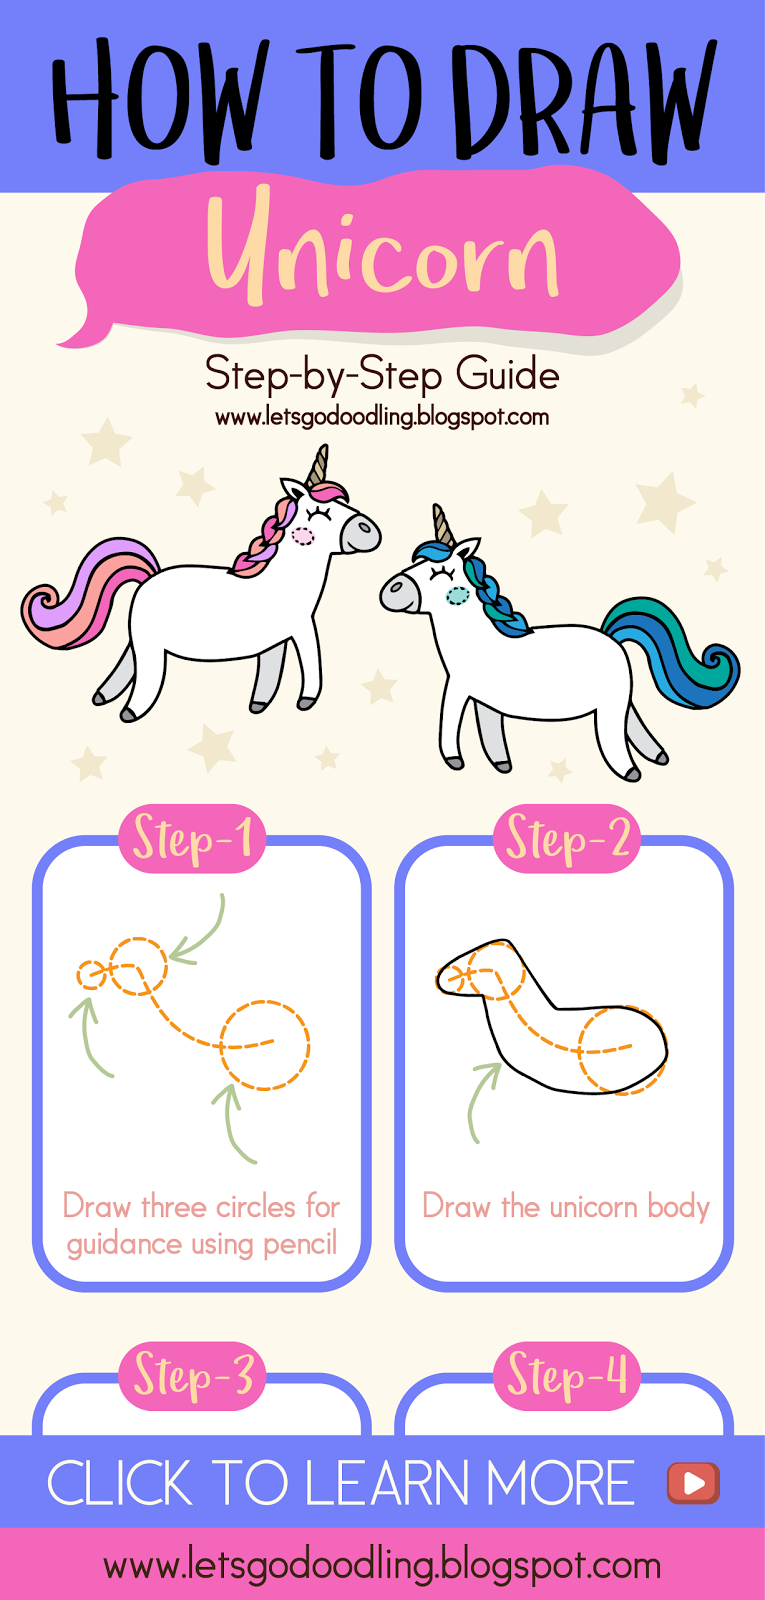 How to draw a cute unicorn easy step by step drawing tutorials youtubechannel youtubekids drawingtutorials diycrafts diy unicorn horse cute